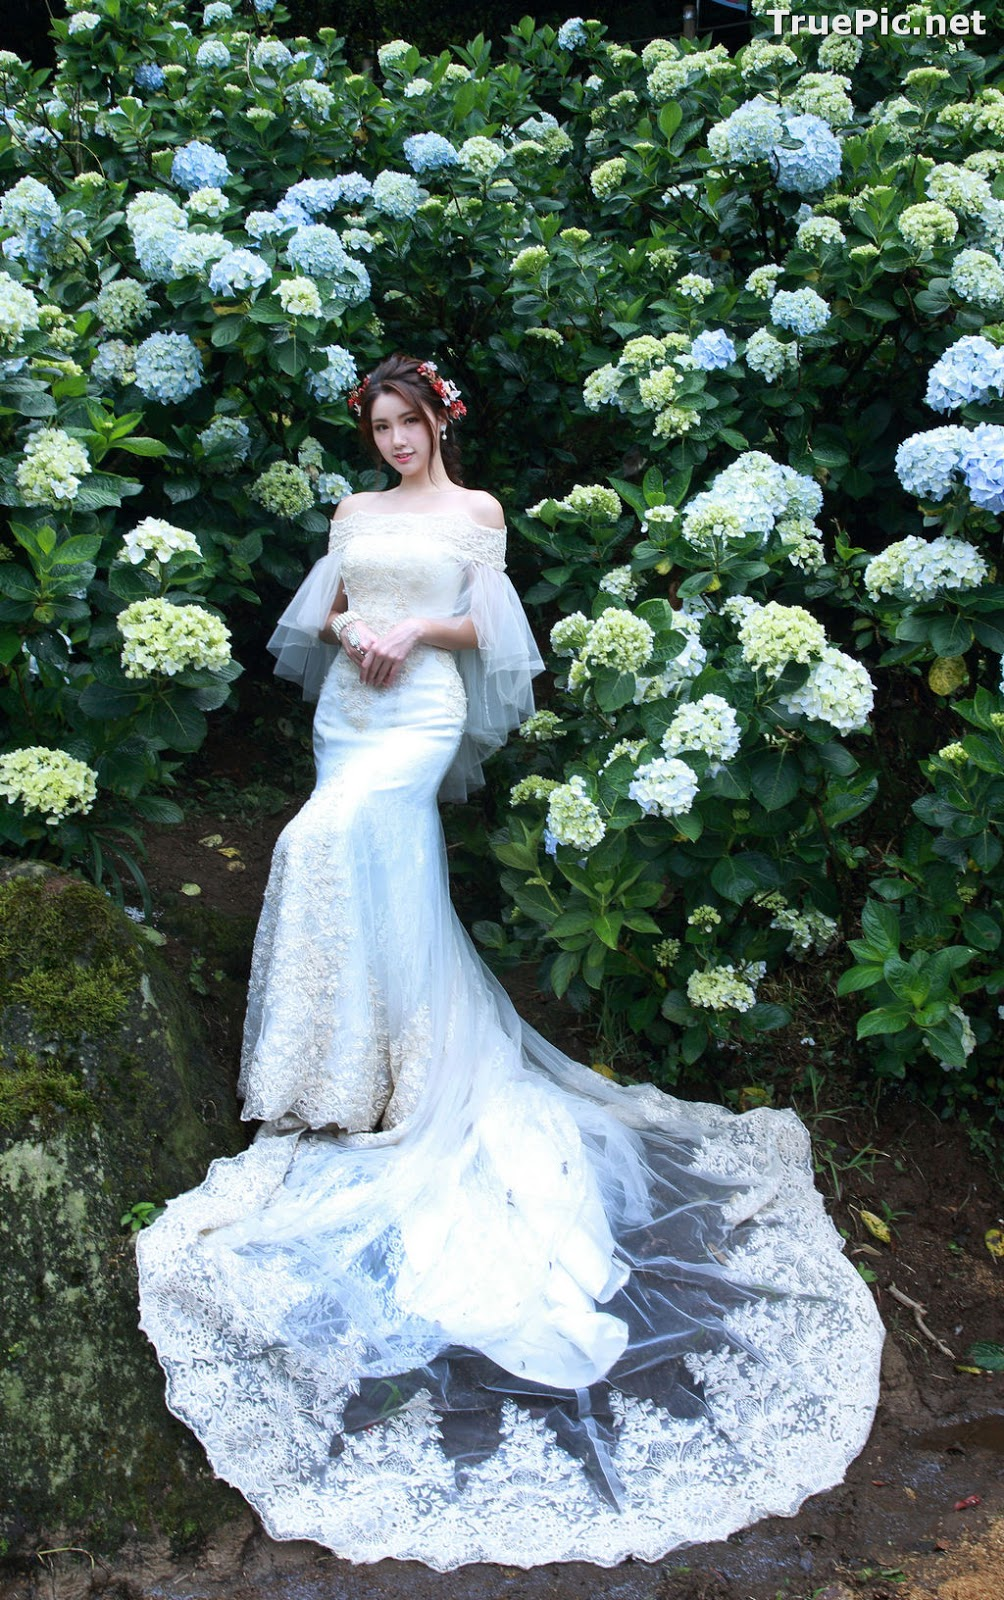 Image Taiwanese Model - 張倫甄 - Beautiful Bride and Hydrangea Flowers - TruePic.net - Picture-10